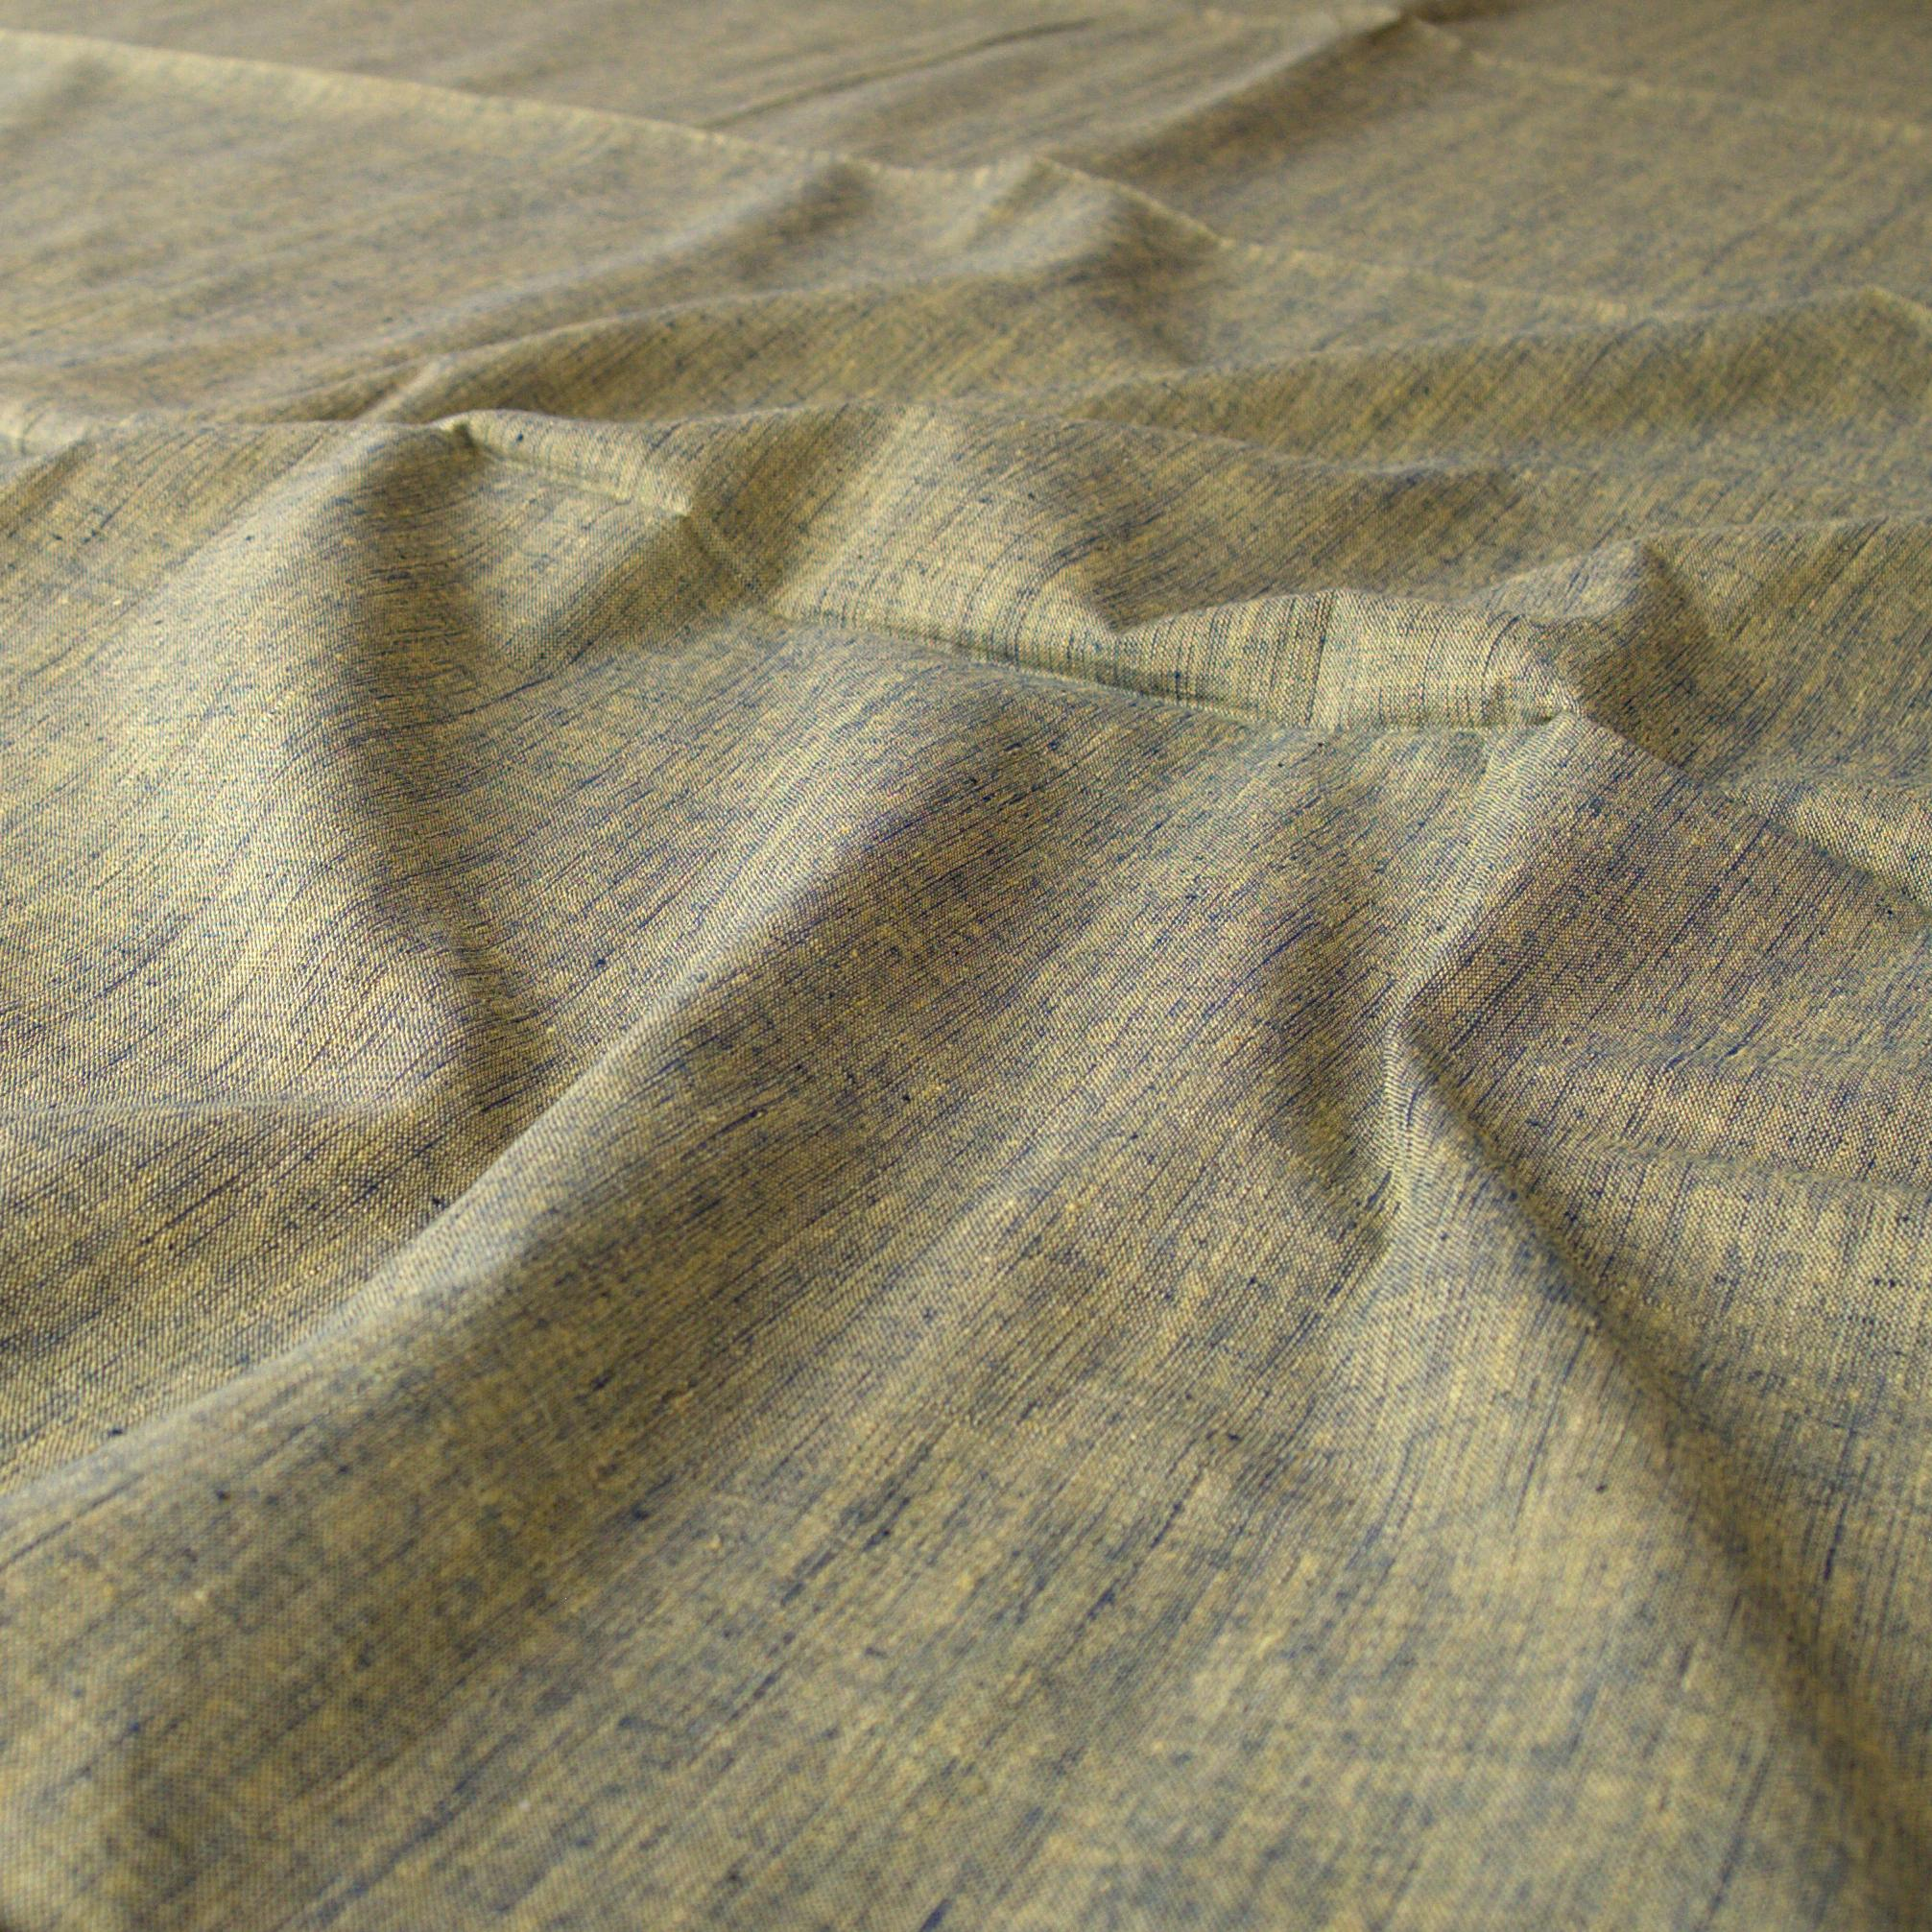 100 % Handloom Woven Cotton - Cross Colour - Pomegranate Yellow Warp, Natural Indigo Weft - Contrast